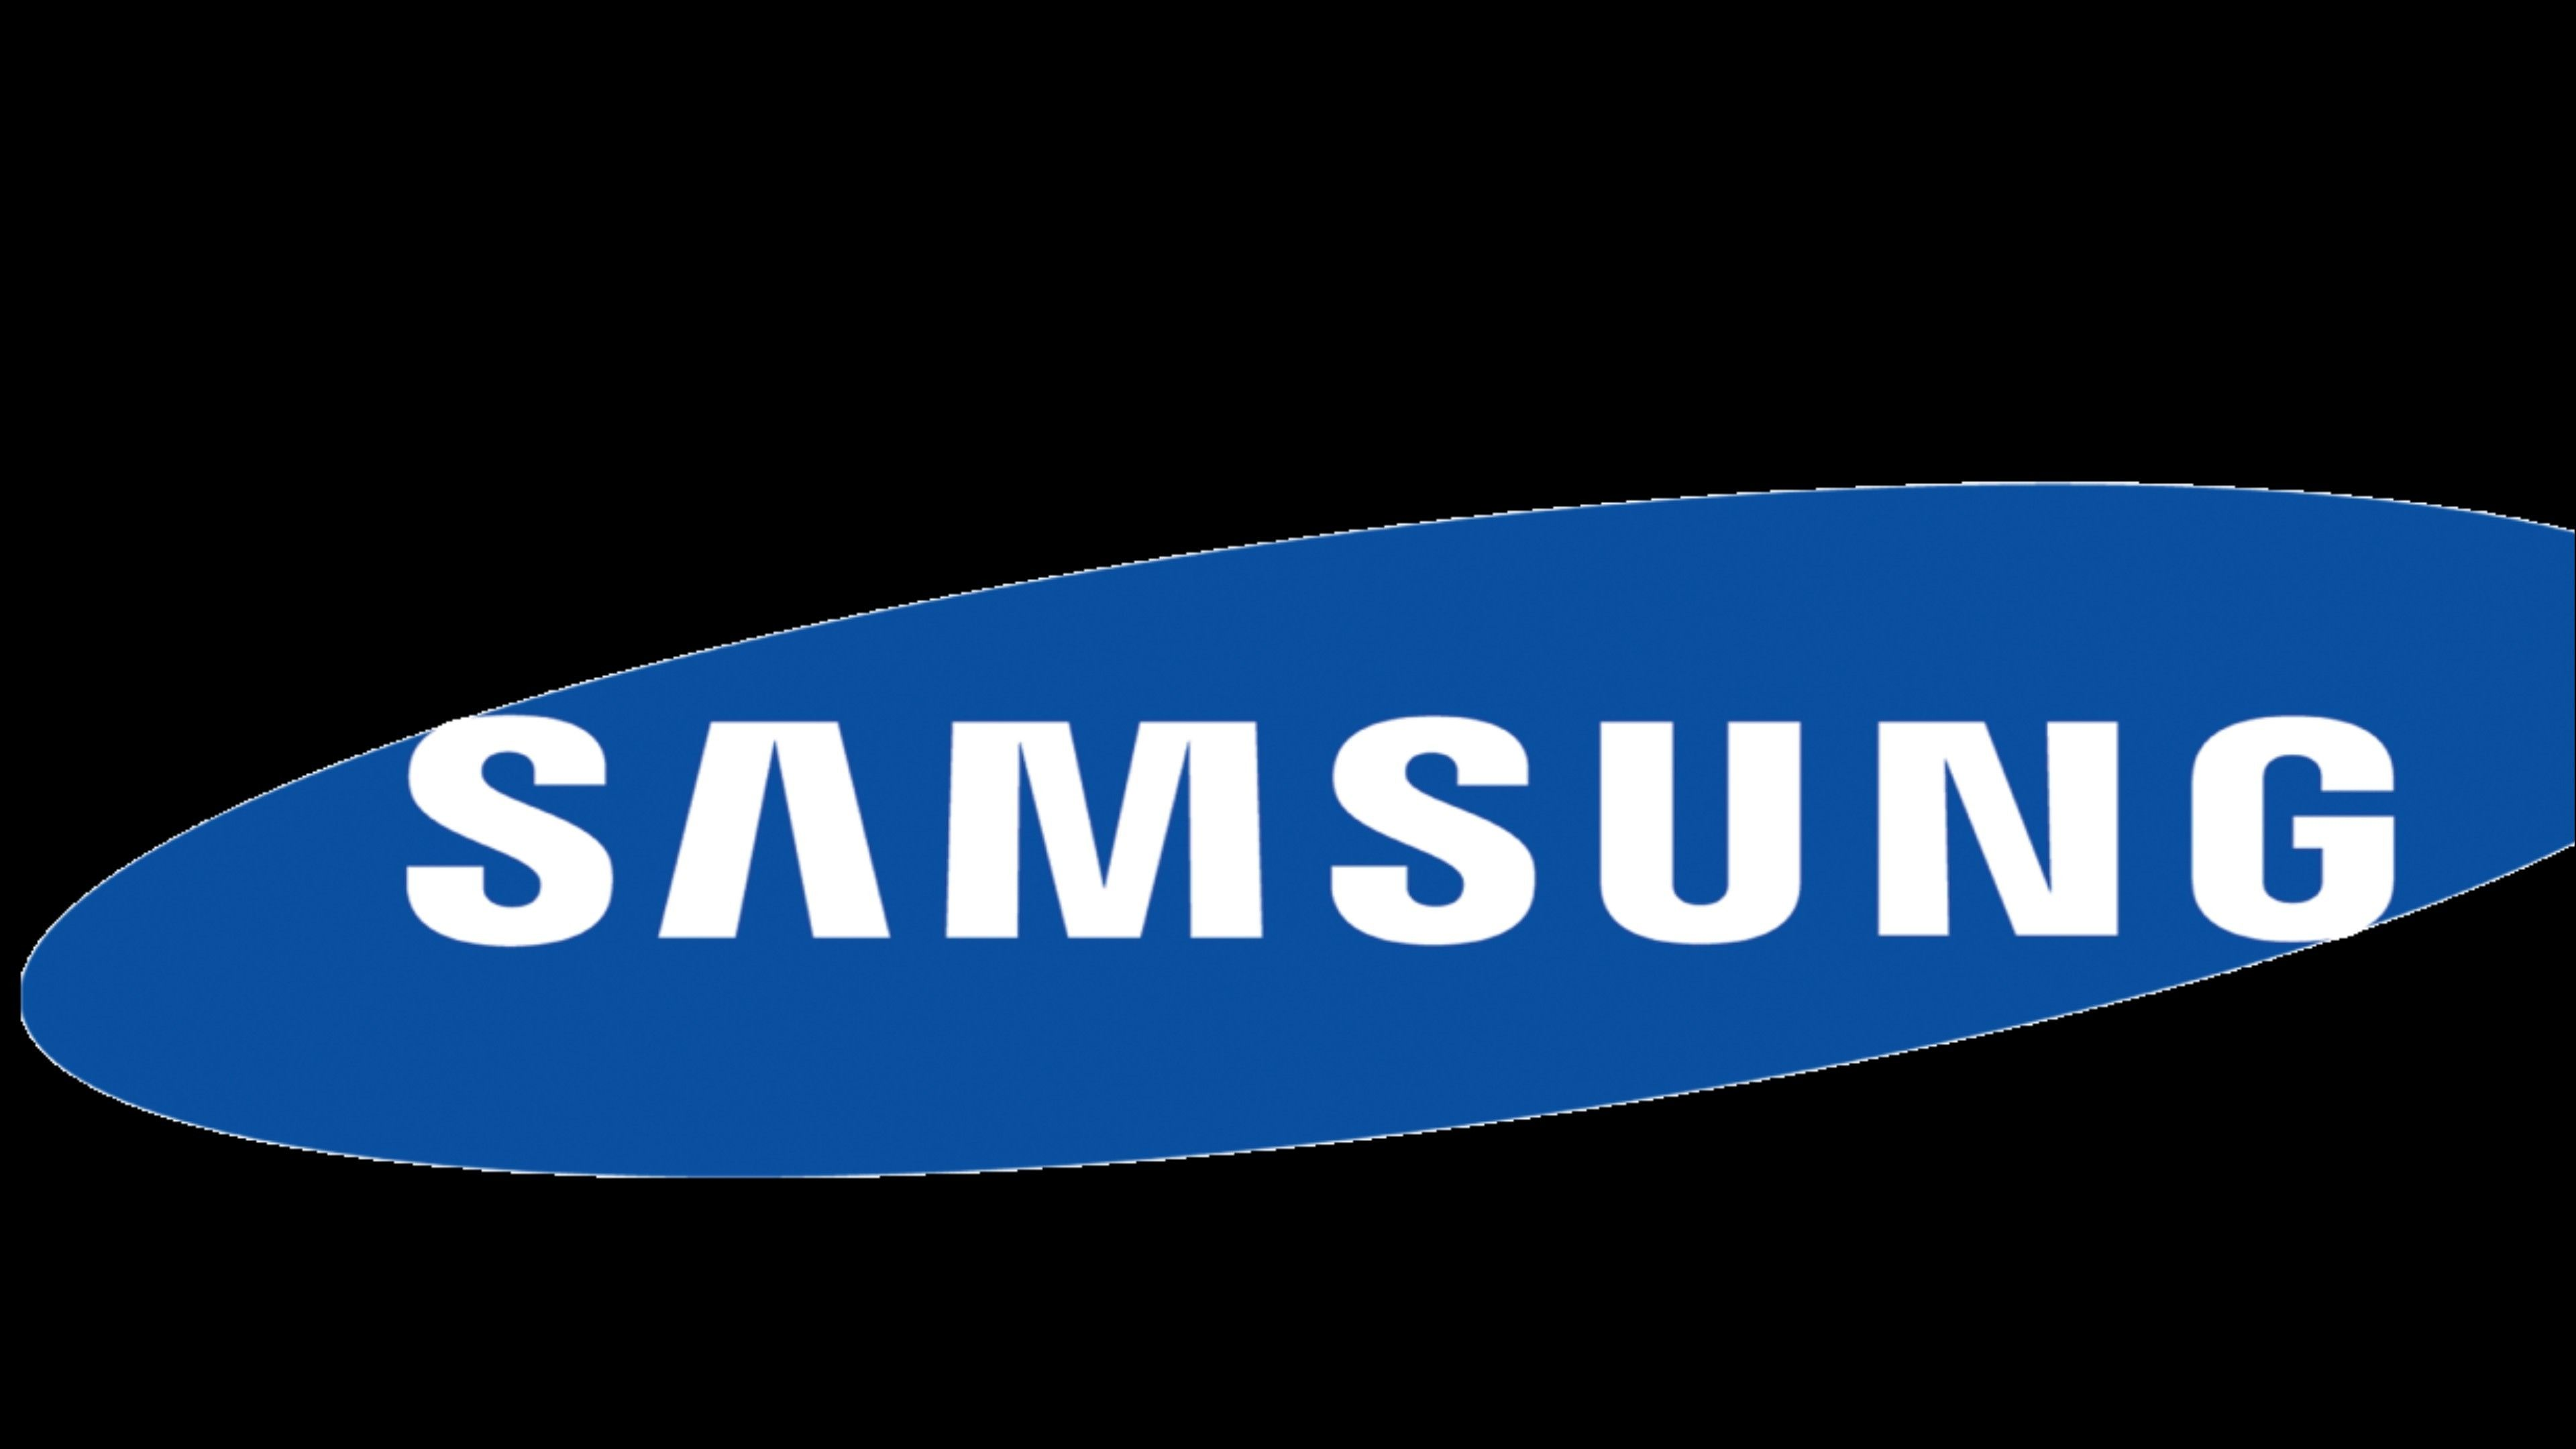 Samsung 4k Logo Wallpapers Top Free Samsung 4k Logo Backgrounds Wallpaperaccess